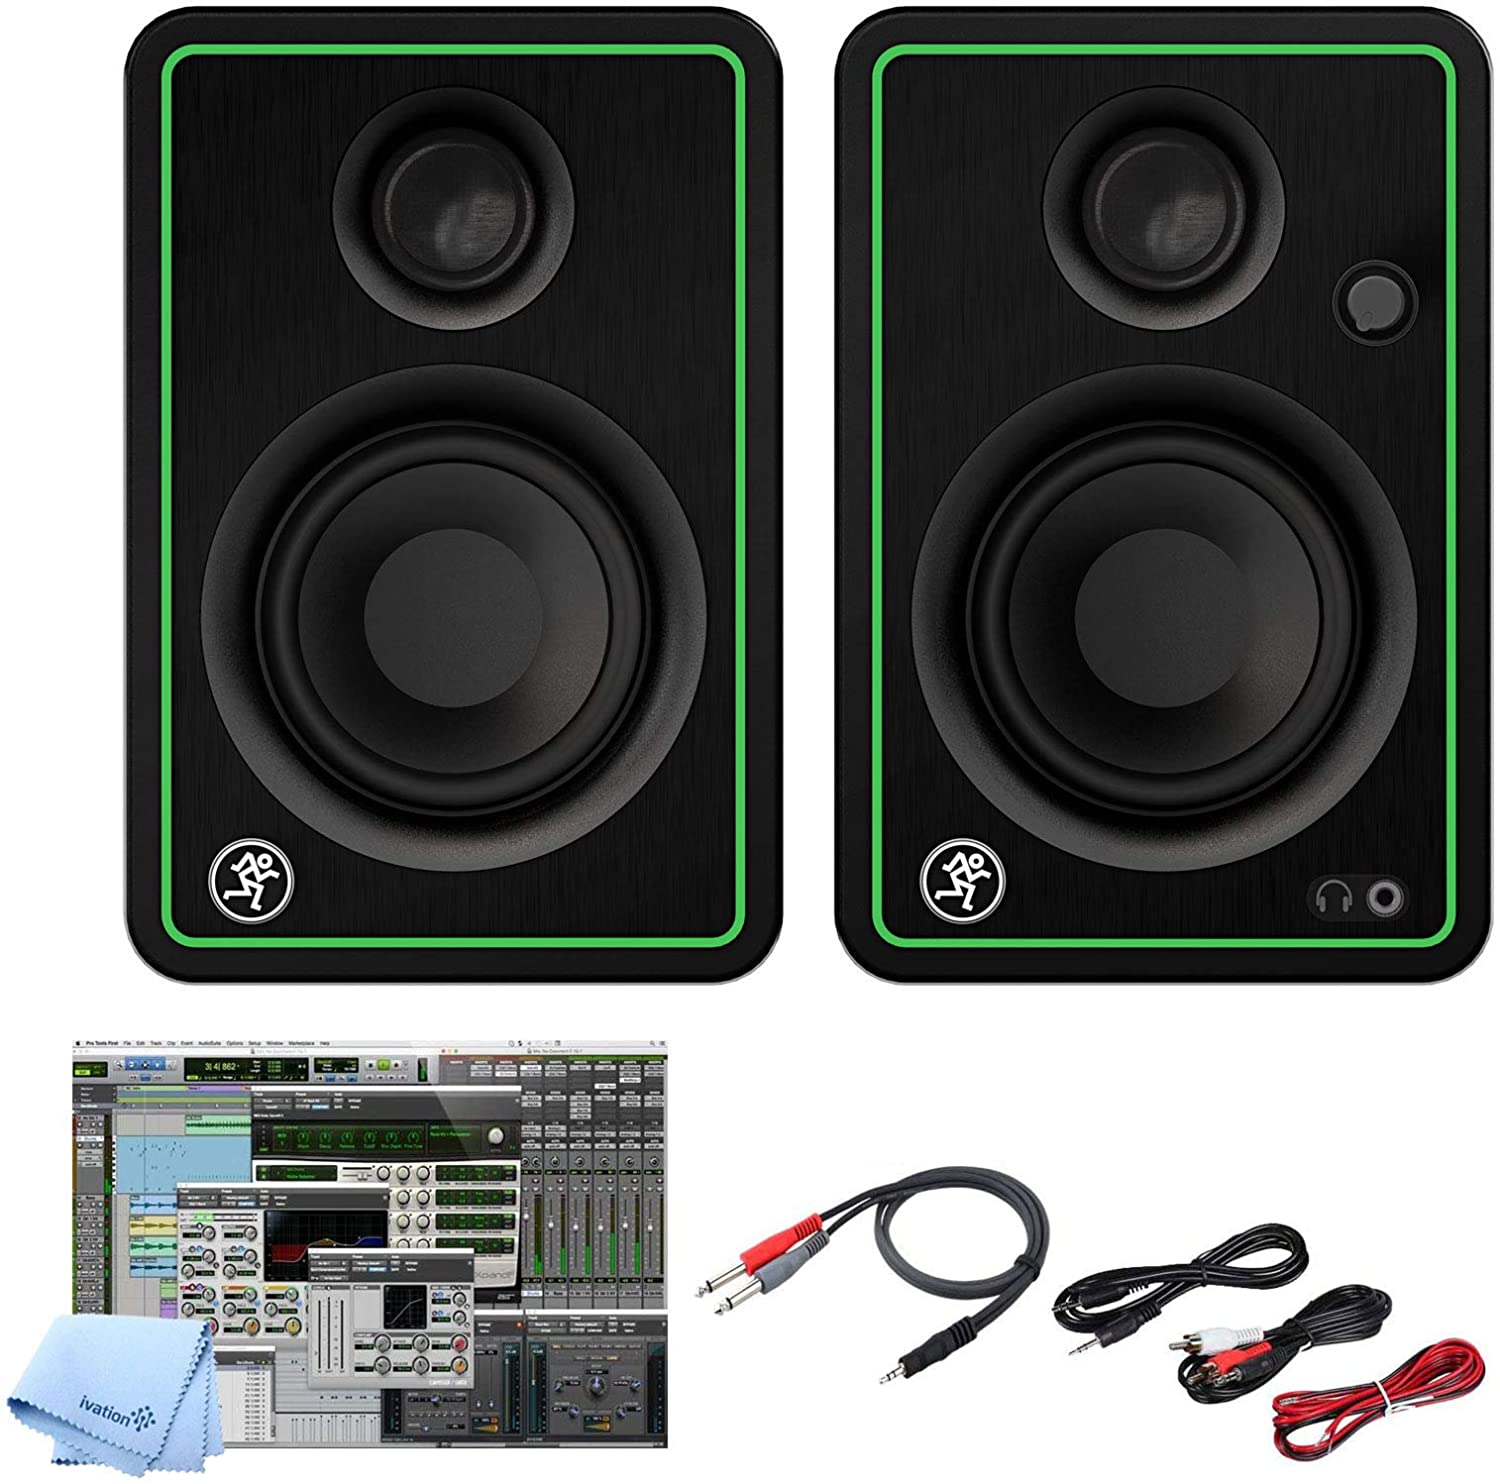 Mackie CR3-X 3-Inch Creative Reference Multimedia Monitors Bundle with and Pro Cable Kit Featuring Pro Tools First DAW Music Editing Software